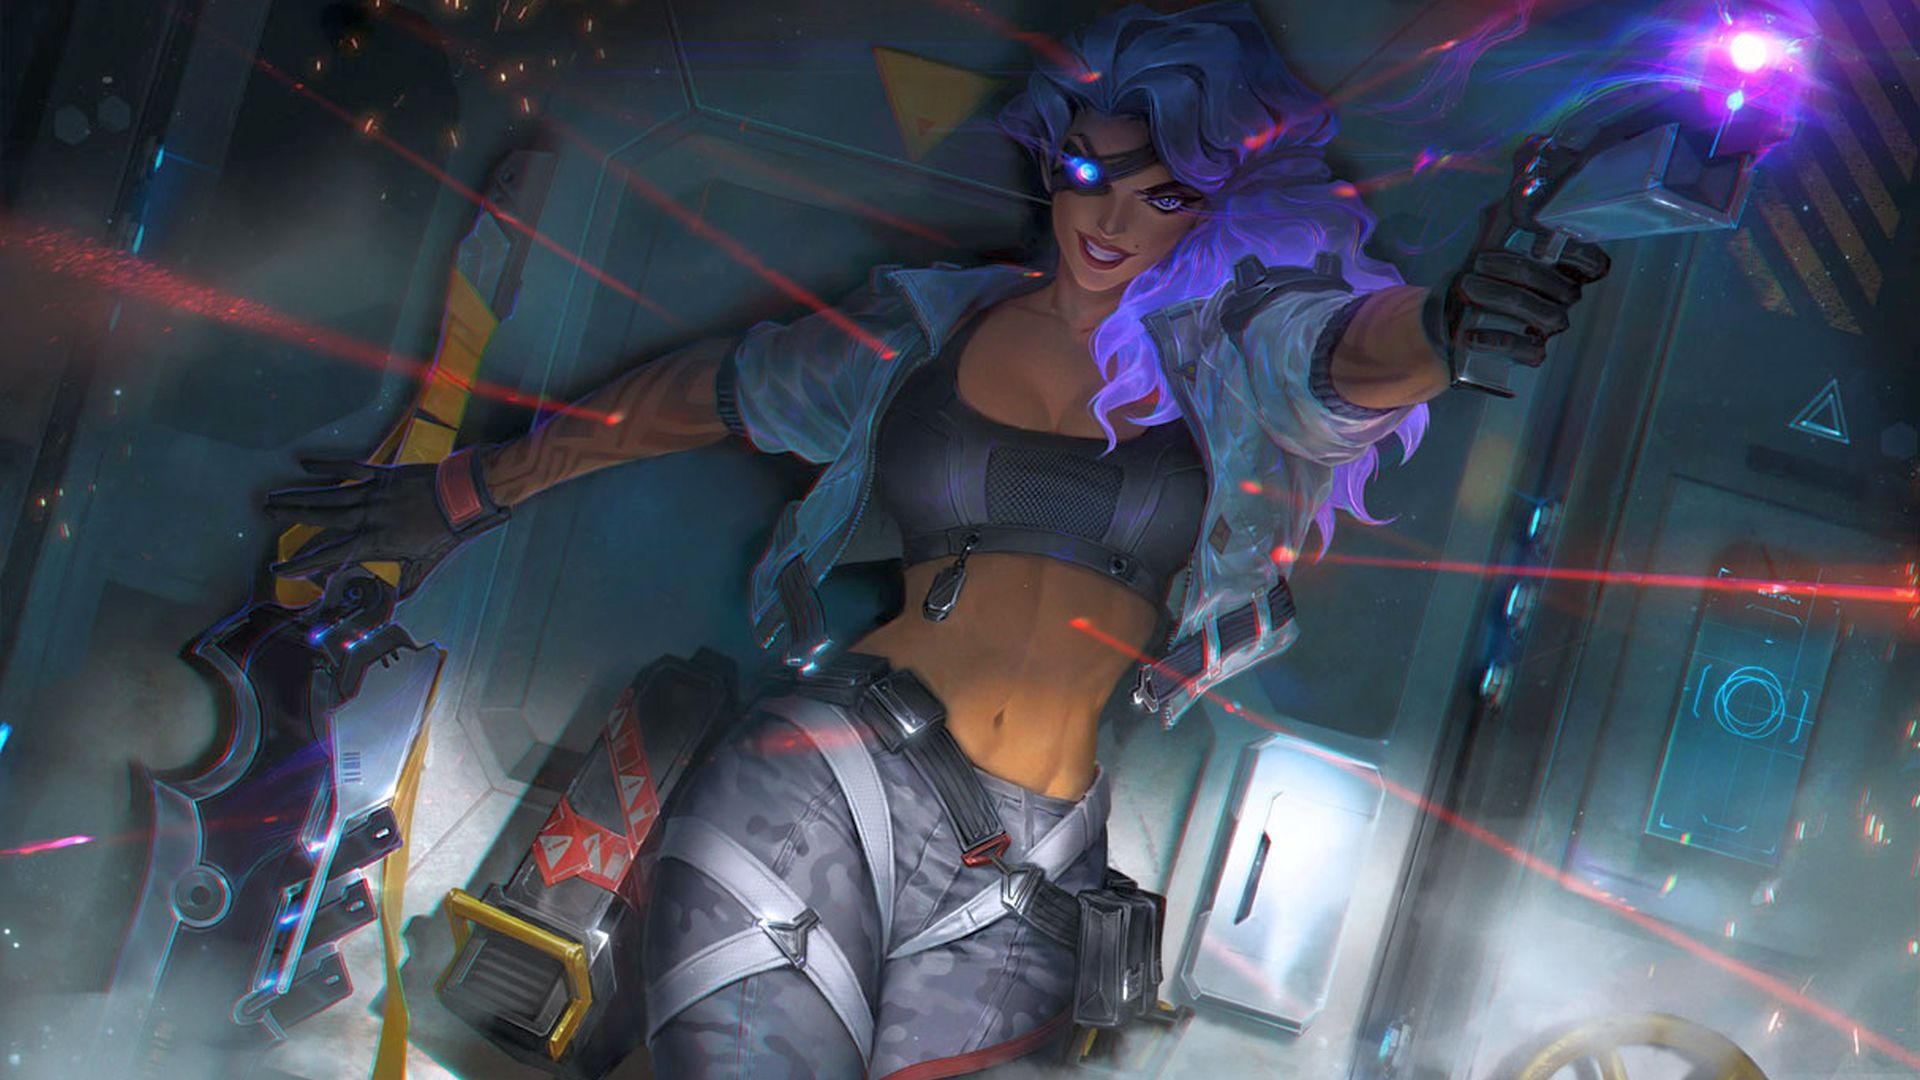 """League of Legends' Samira gets hotfix nerfs, was """"clearly too strong on day one"""""""